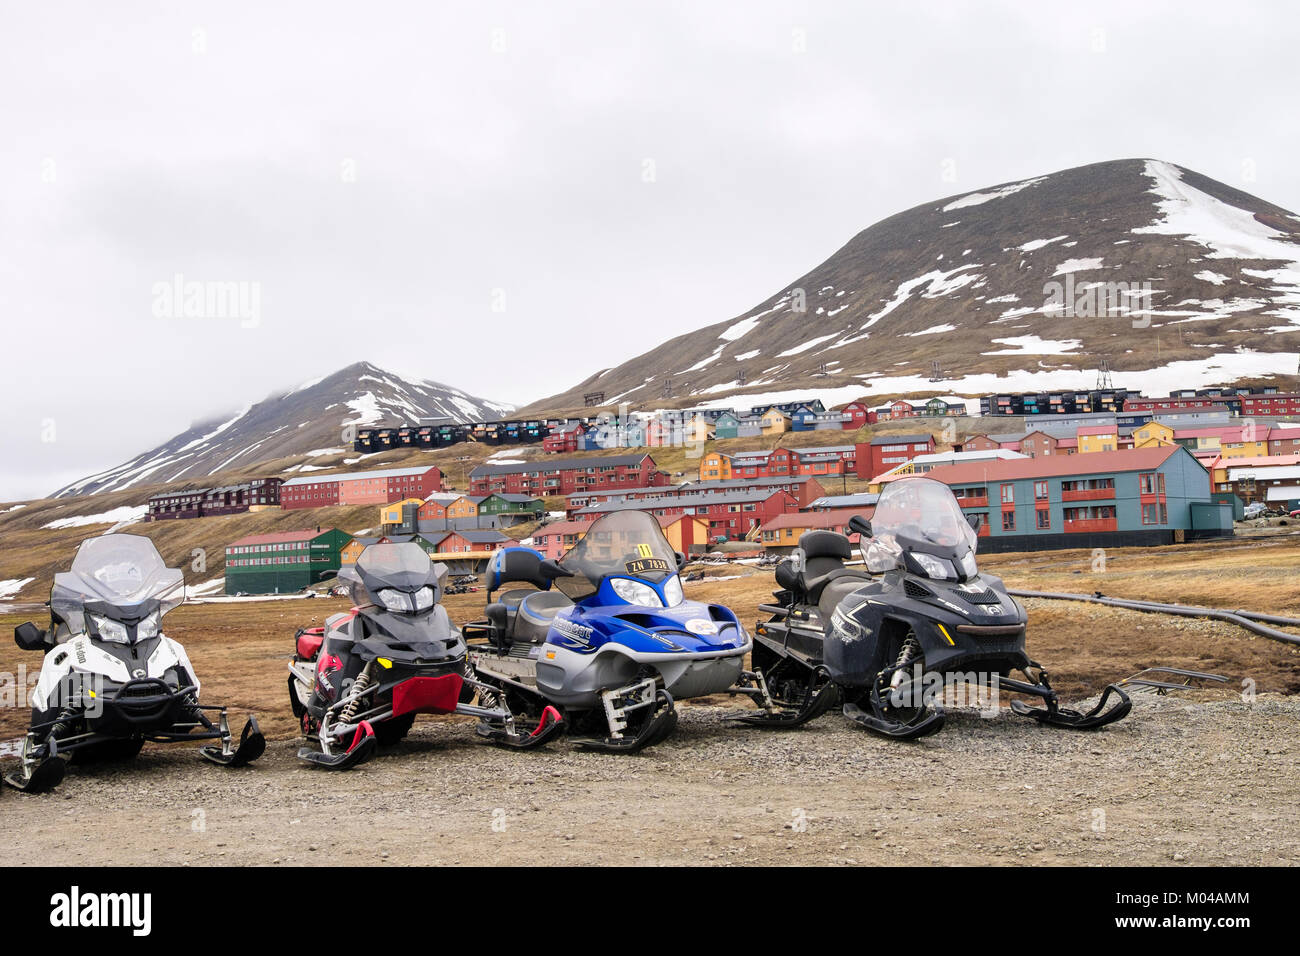 Motorised snowmobile scooters parked on roadside in summer in old mining town of Longyearbyen, Spitsbergen Island, - Stock Image